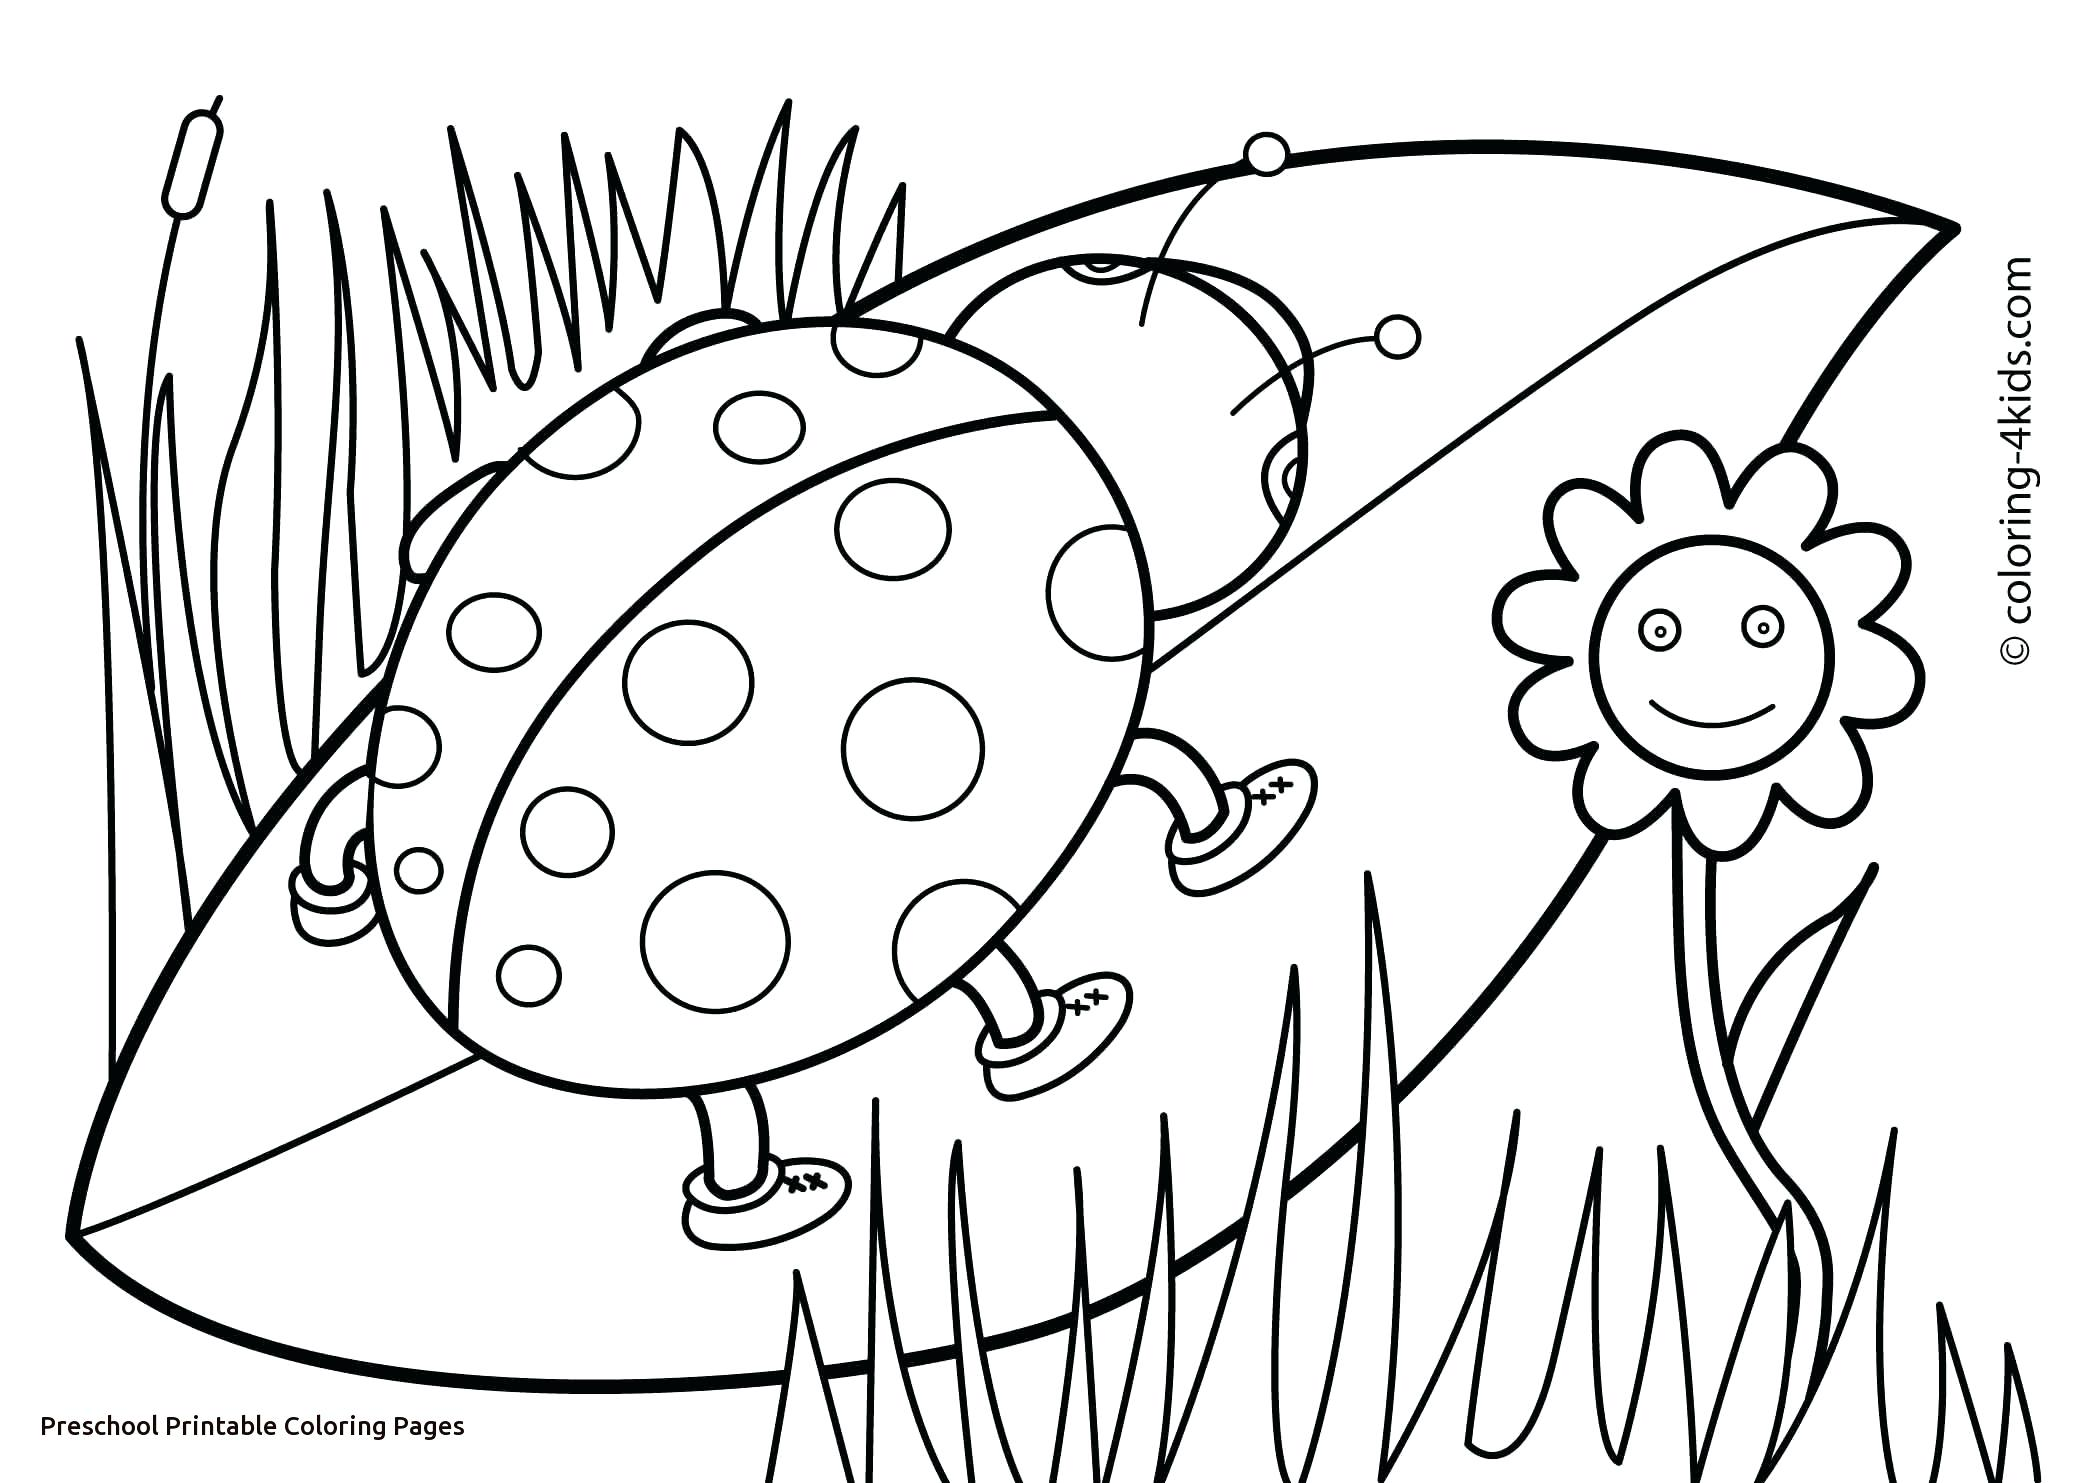 2079x1483 Free Printable Christmas Coloring Pages Candy Canes Preschool